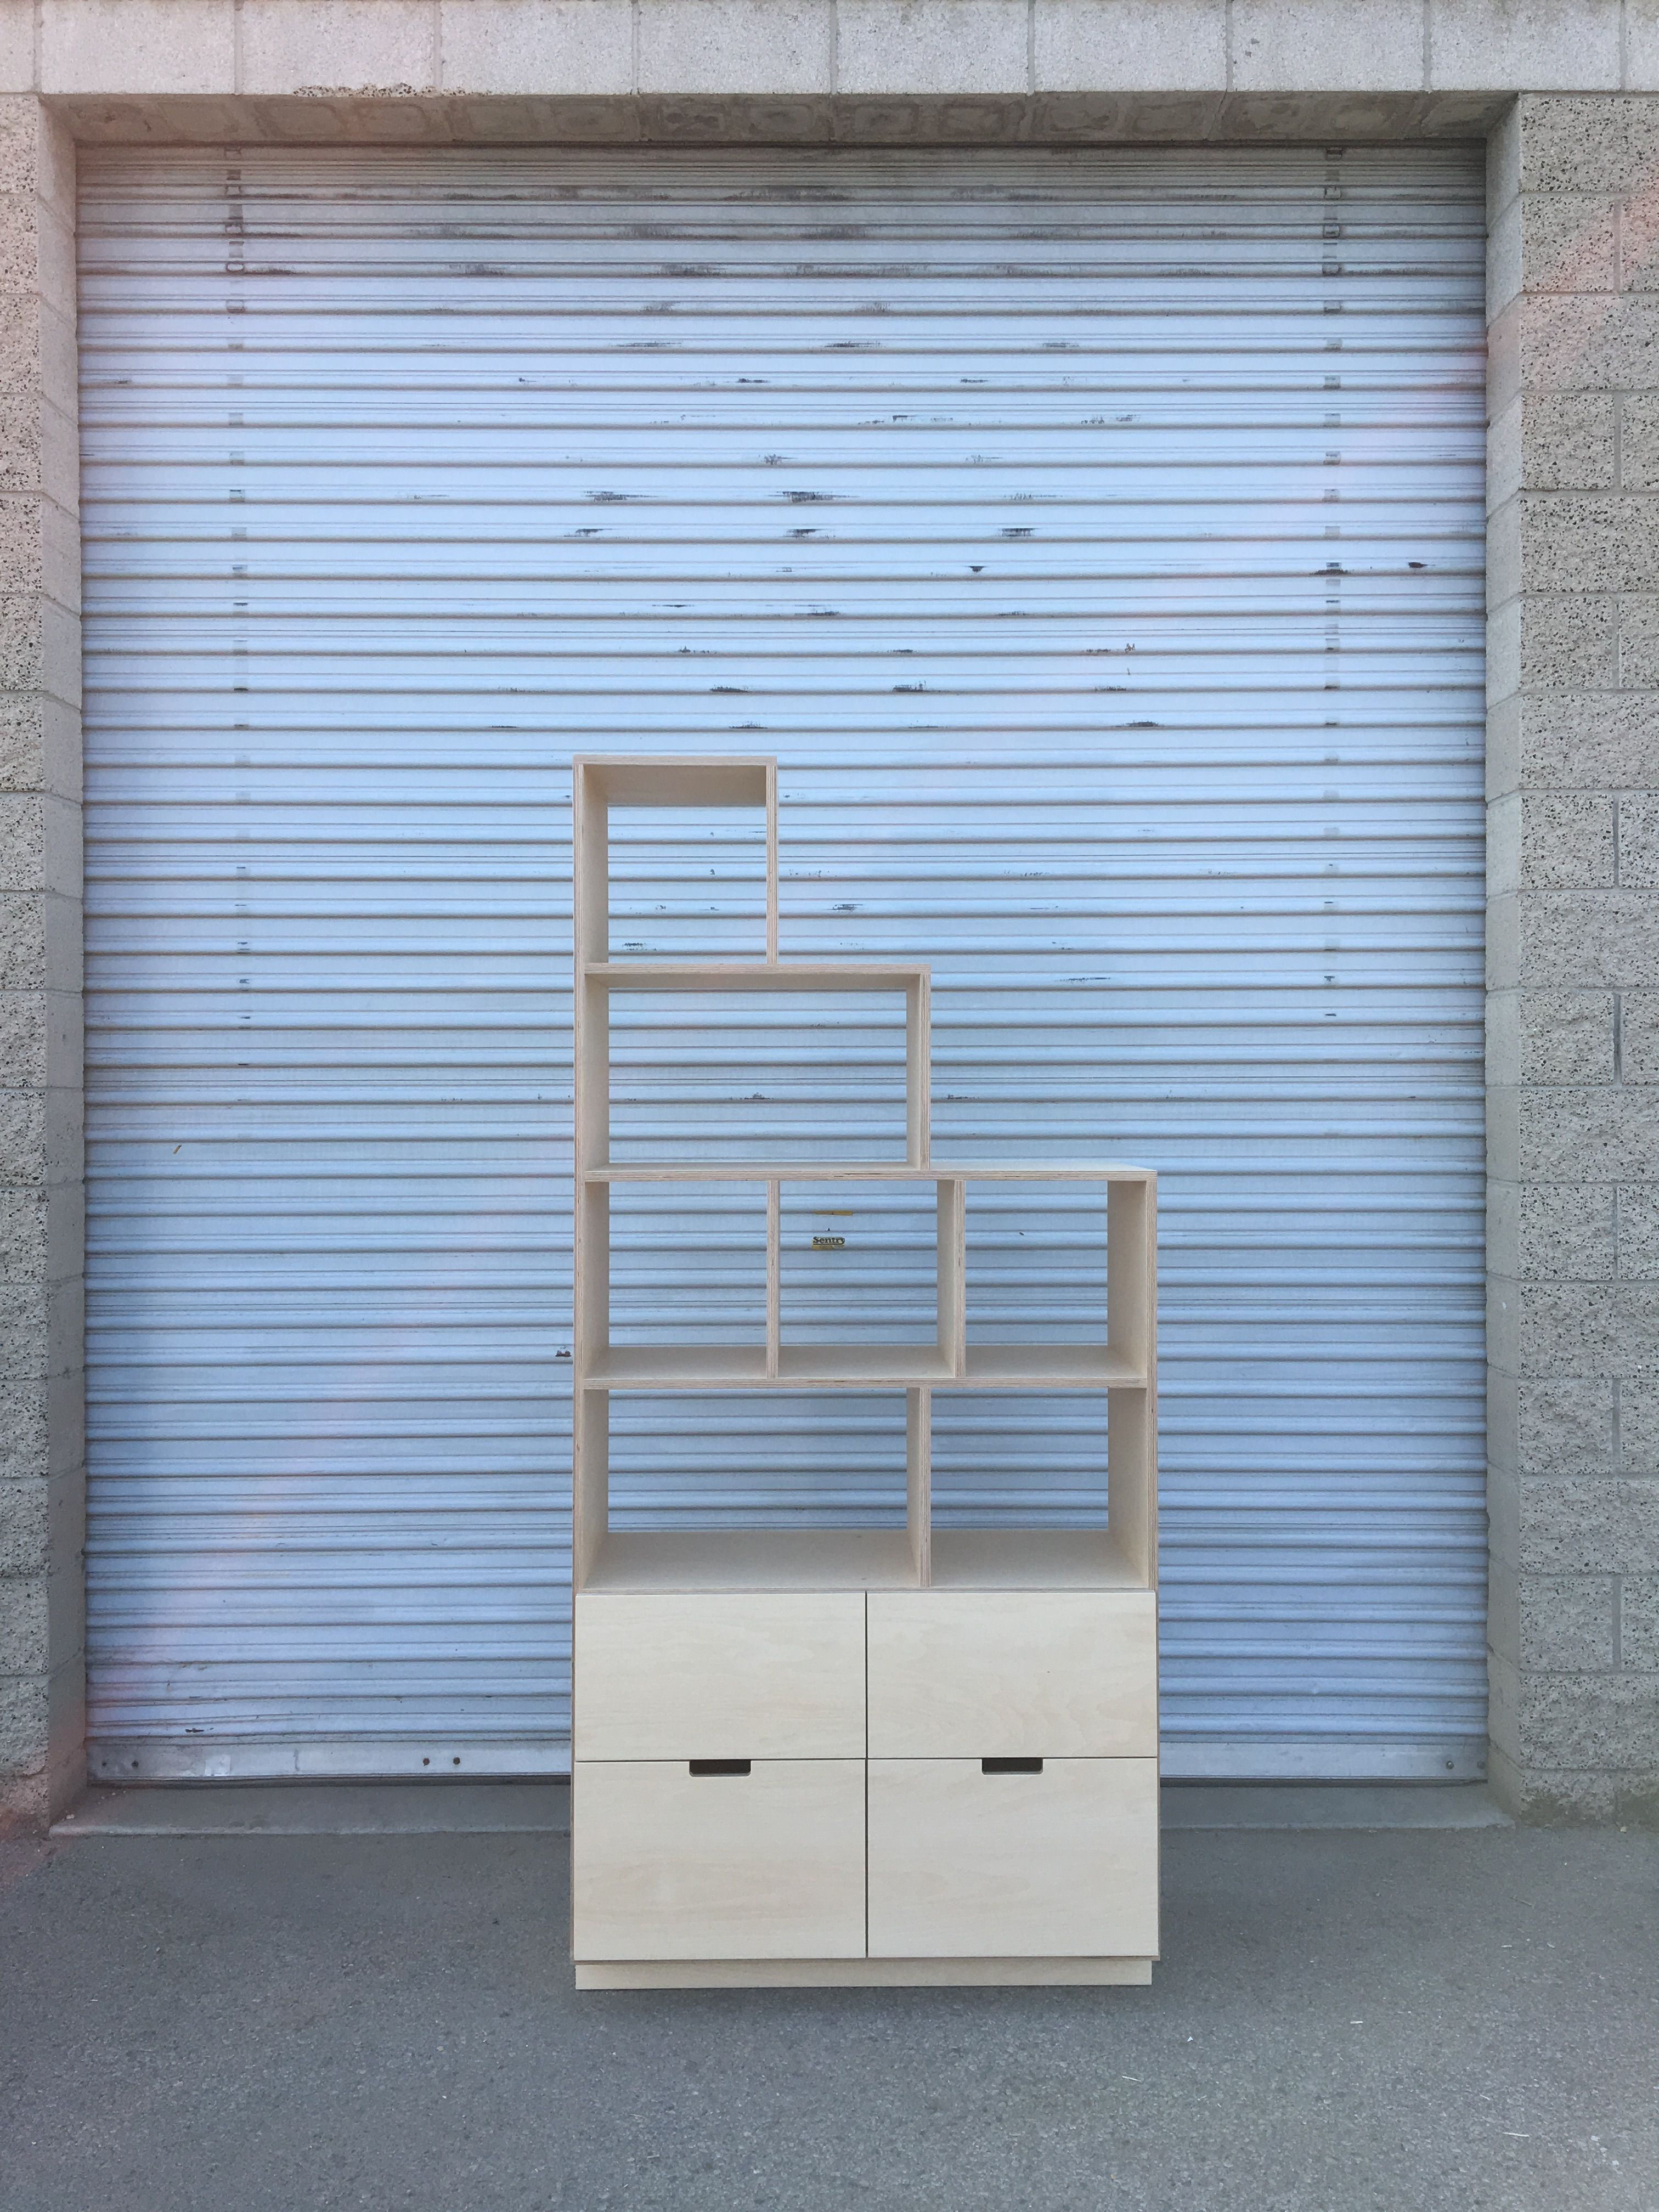 Shelving Unit with Drawers product image 0